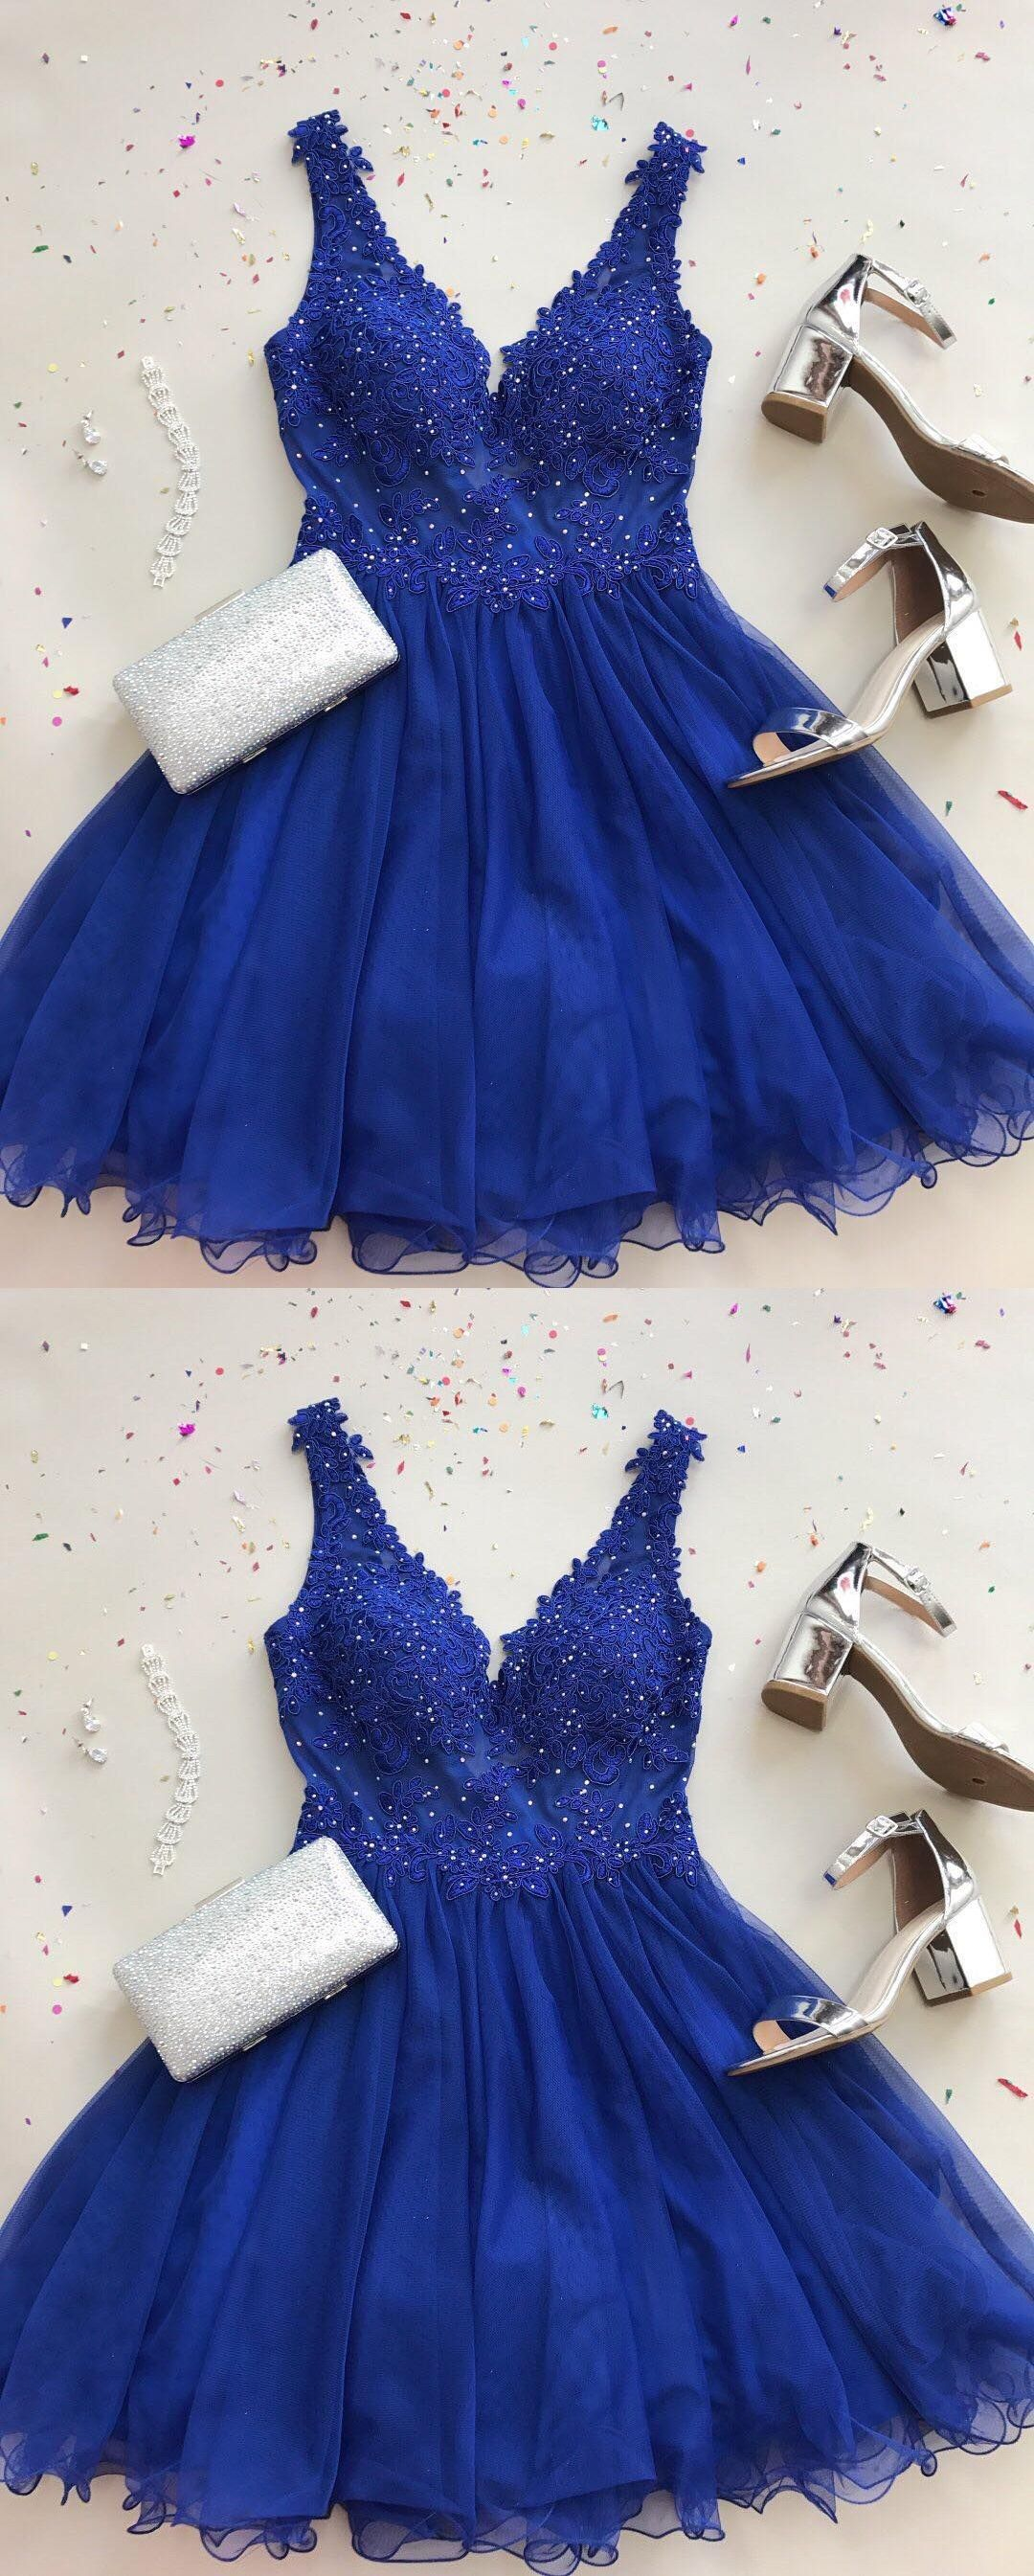 46d890c2699 V-Neck A-Line Royal Blue Chiffon Short Homecoming Dress with ...